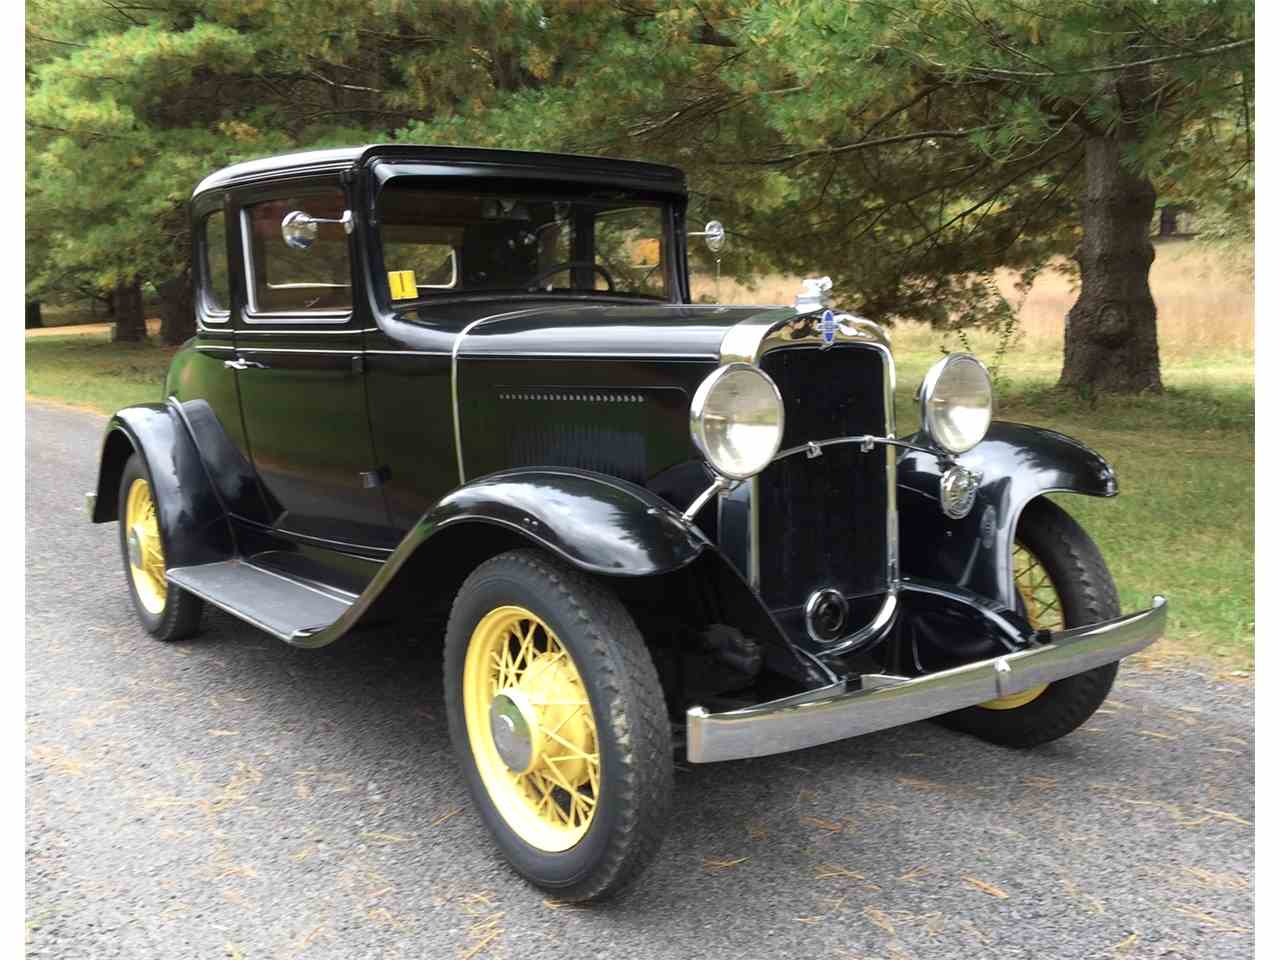 32 Ford Coupe For Sale Craigslist >> 1931 Ford 3 Window Coupe For Sale.html | Autos Post